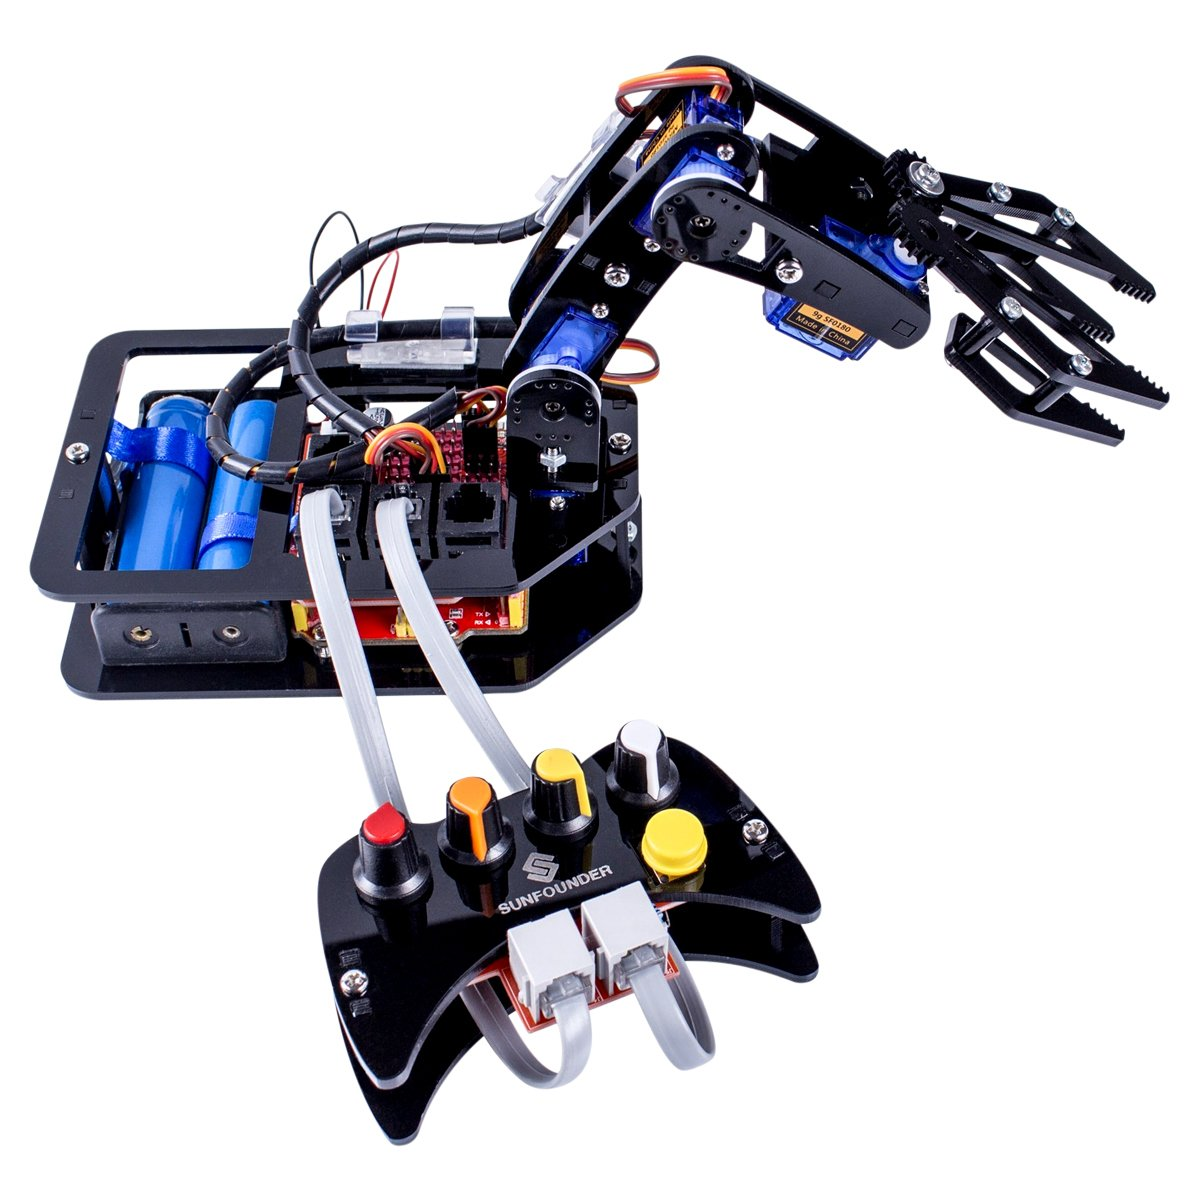 Hamilton Buhl STEAM Robo-Arm Kit for Arduino - Programmable 4-Axis Robot Arm